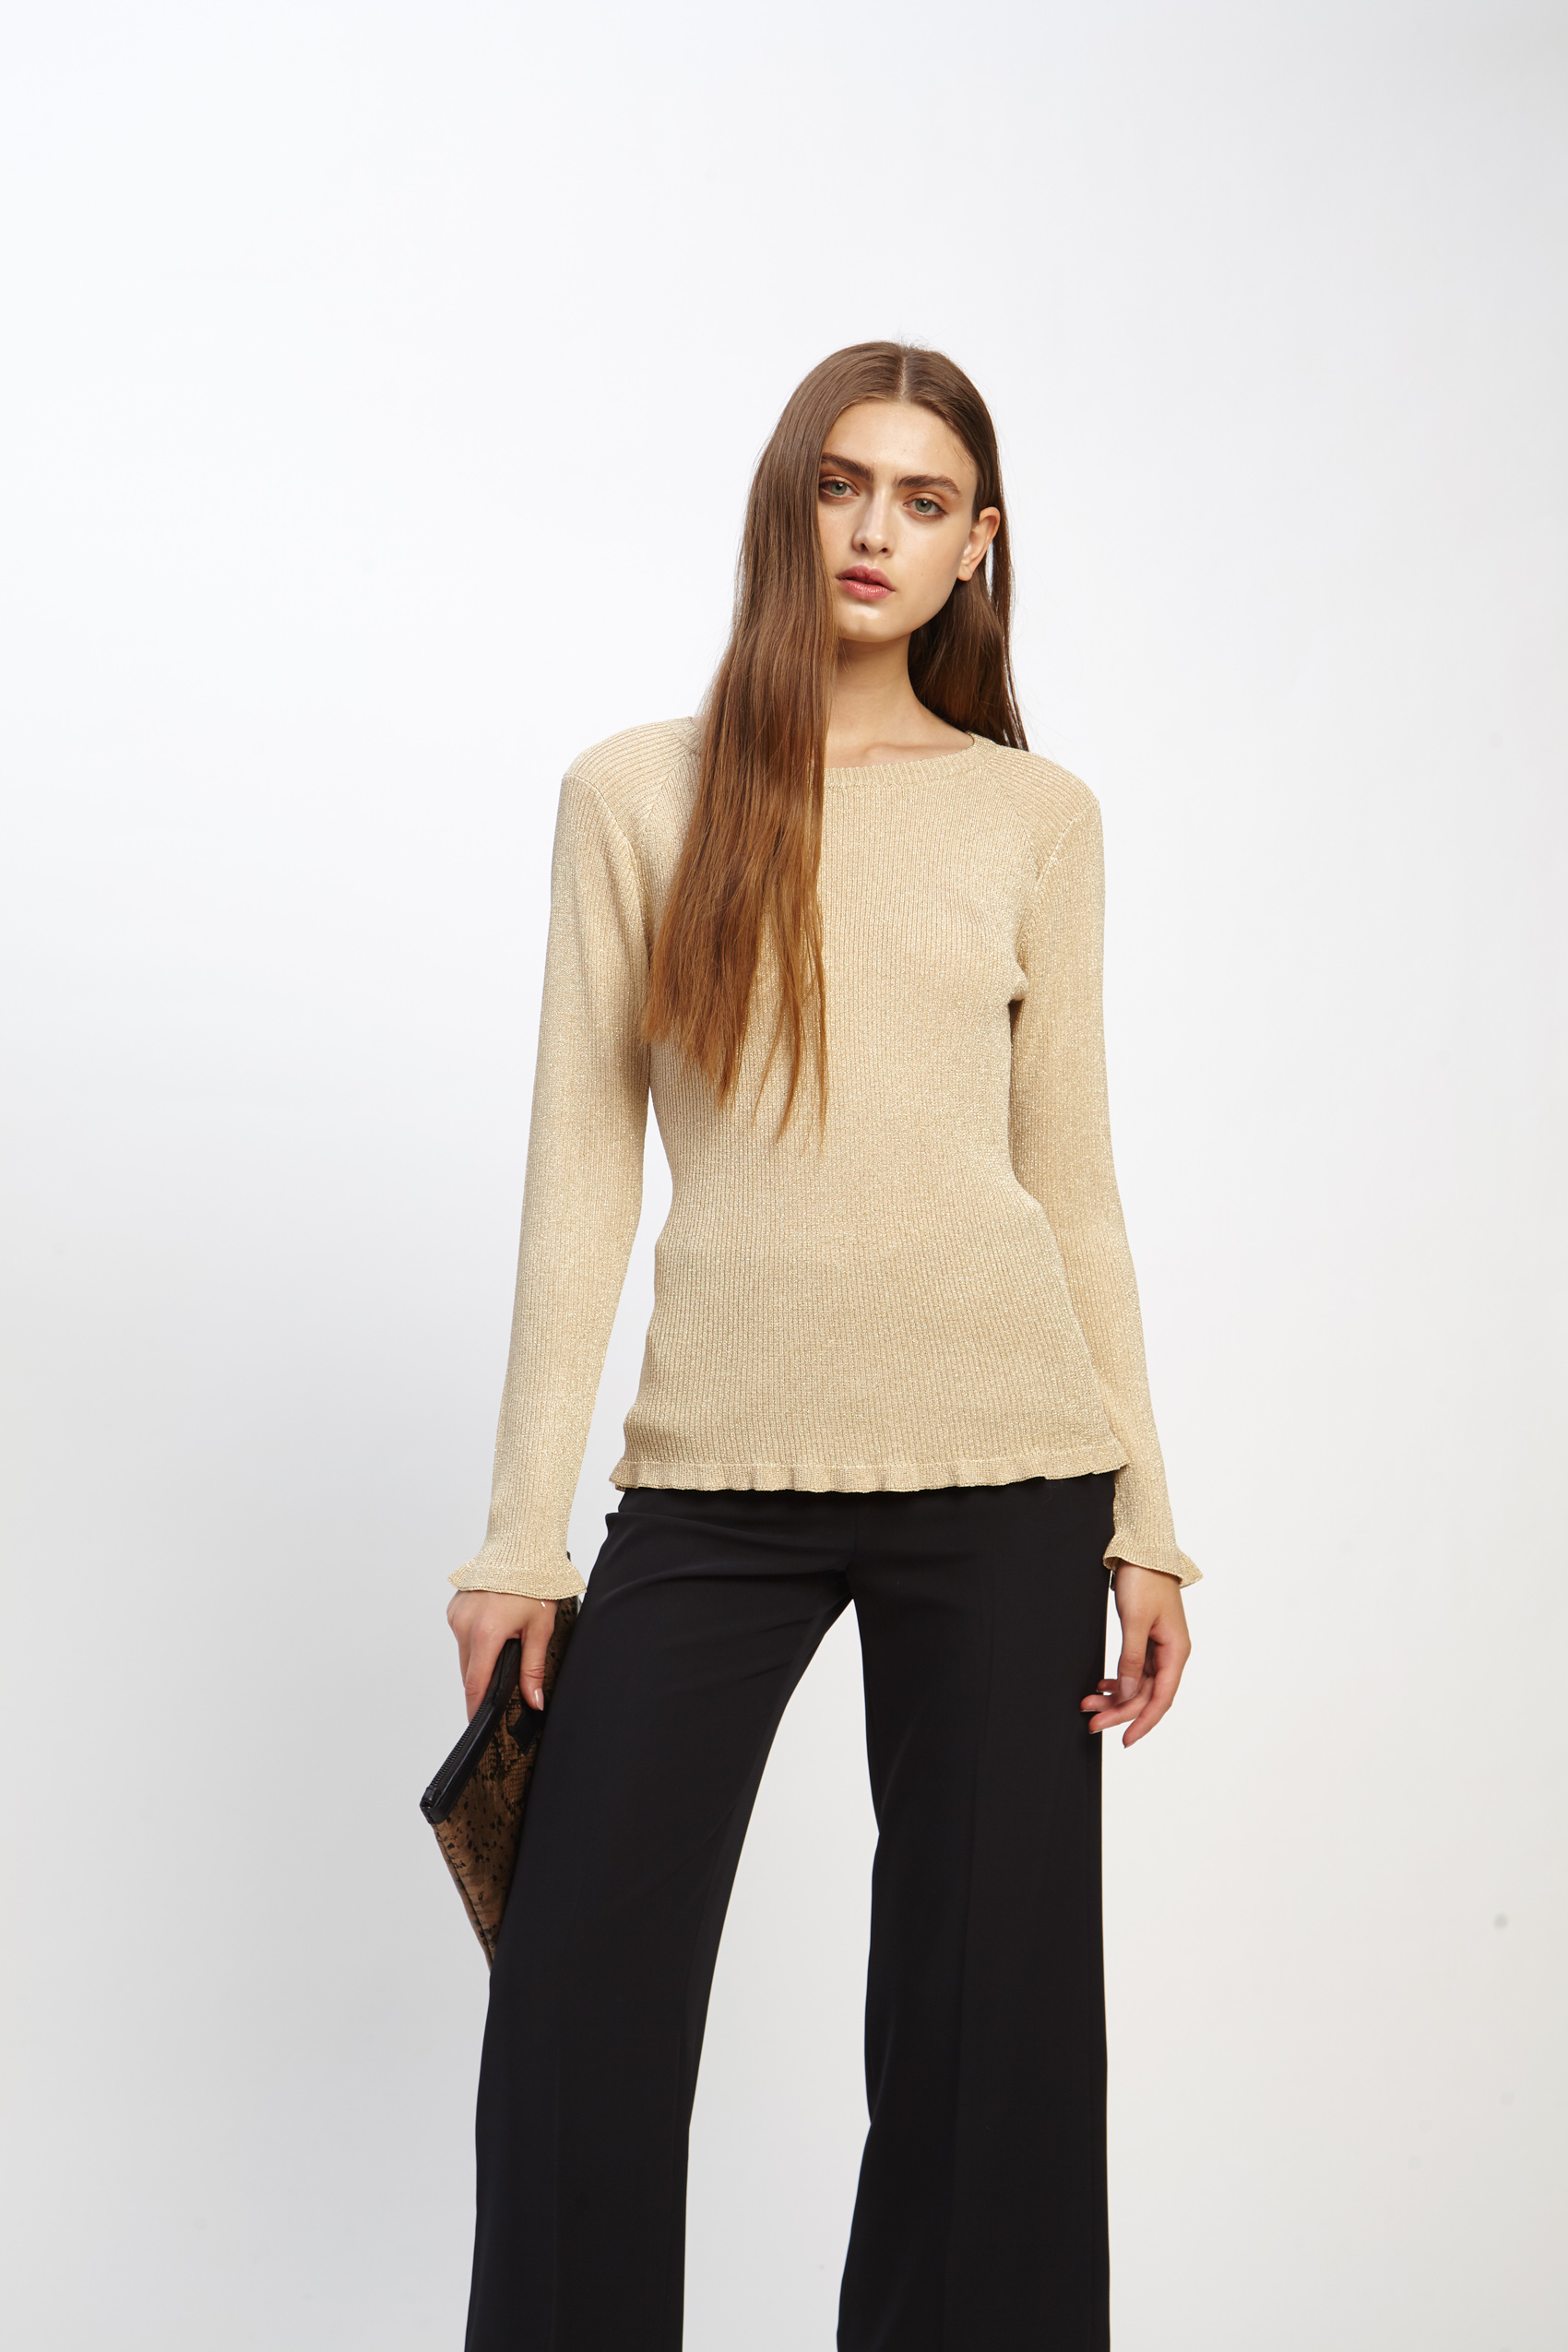 awada_sweater-celine_23-17-2019__picture-2507